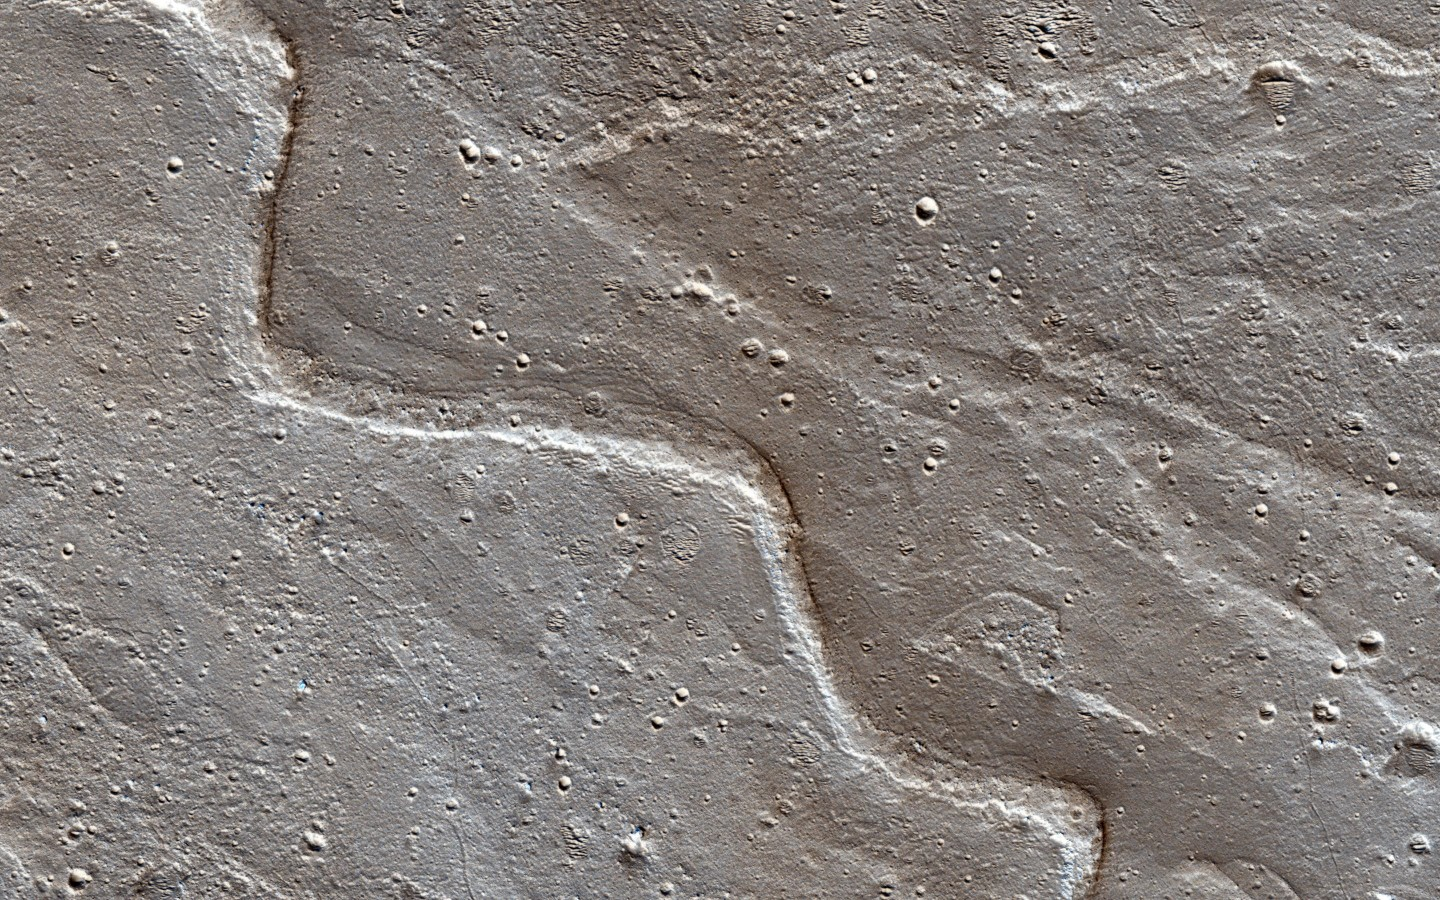 The sinuous ridges on the Orson Welles bajada mark the paths water took as it flowed into this crater. The sinuosity of the ridges tells us something about the speed of the water flow. Fast-moving flows tend to be straighter than slow-moving. (NASA/JPL-Caltech/Univ. of Arizona)